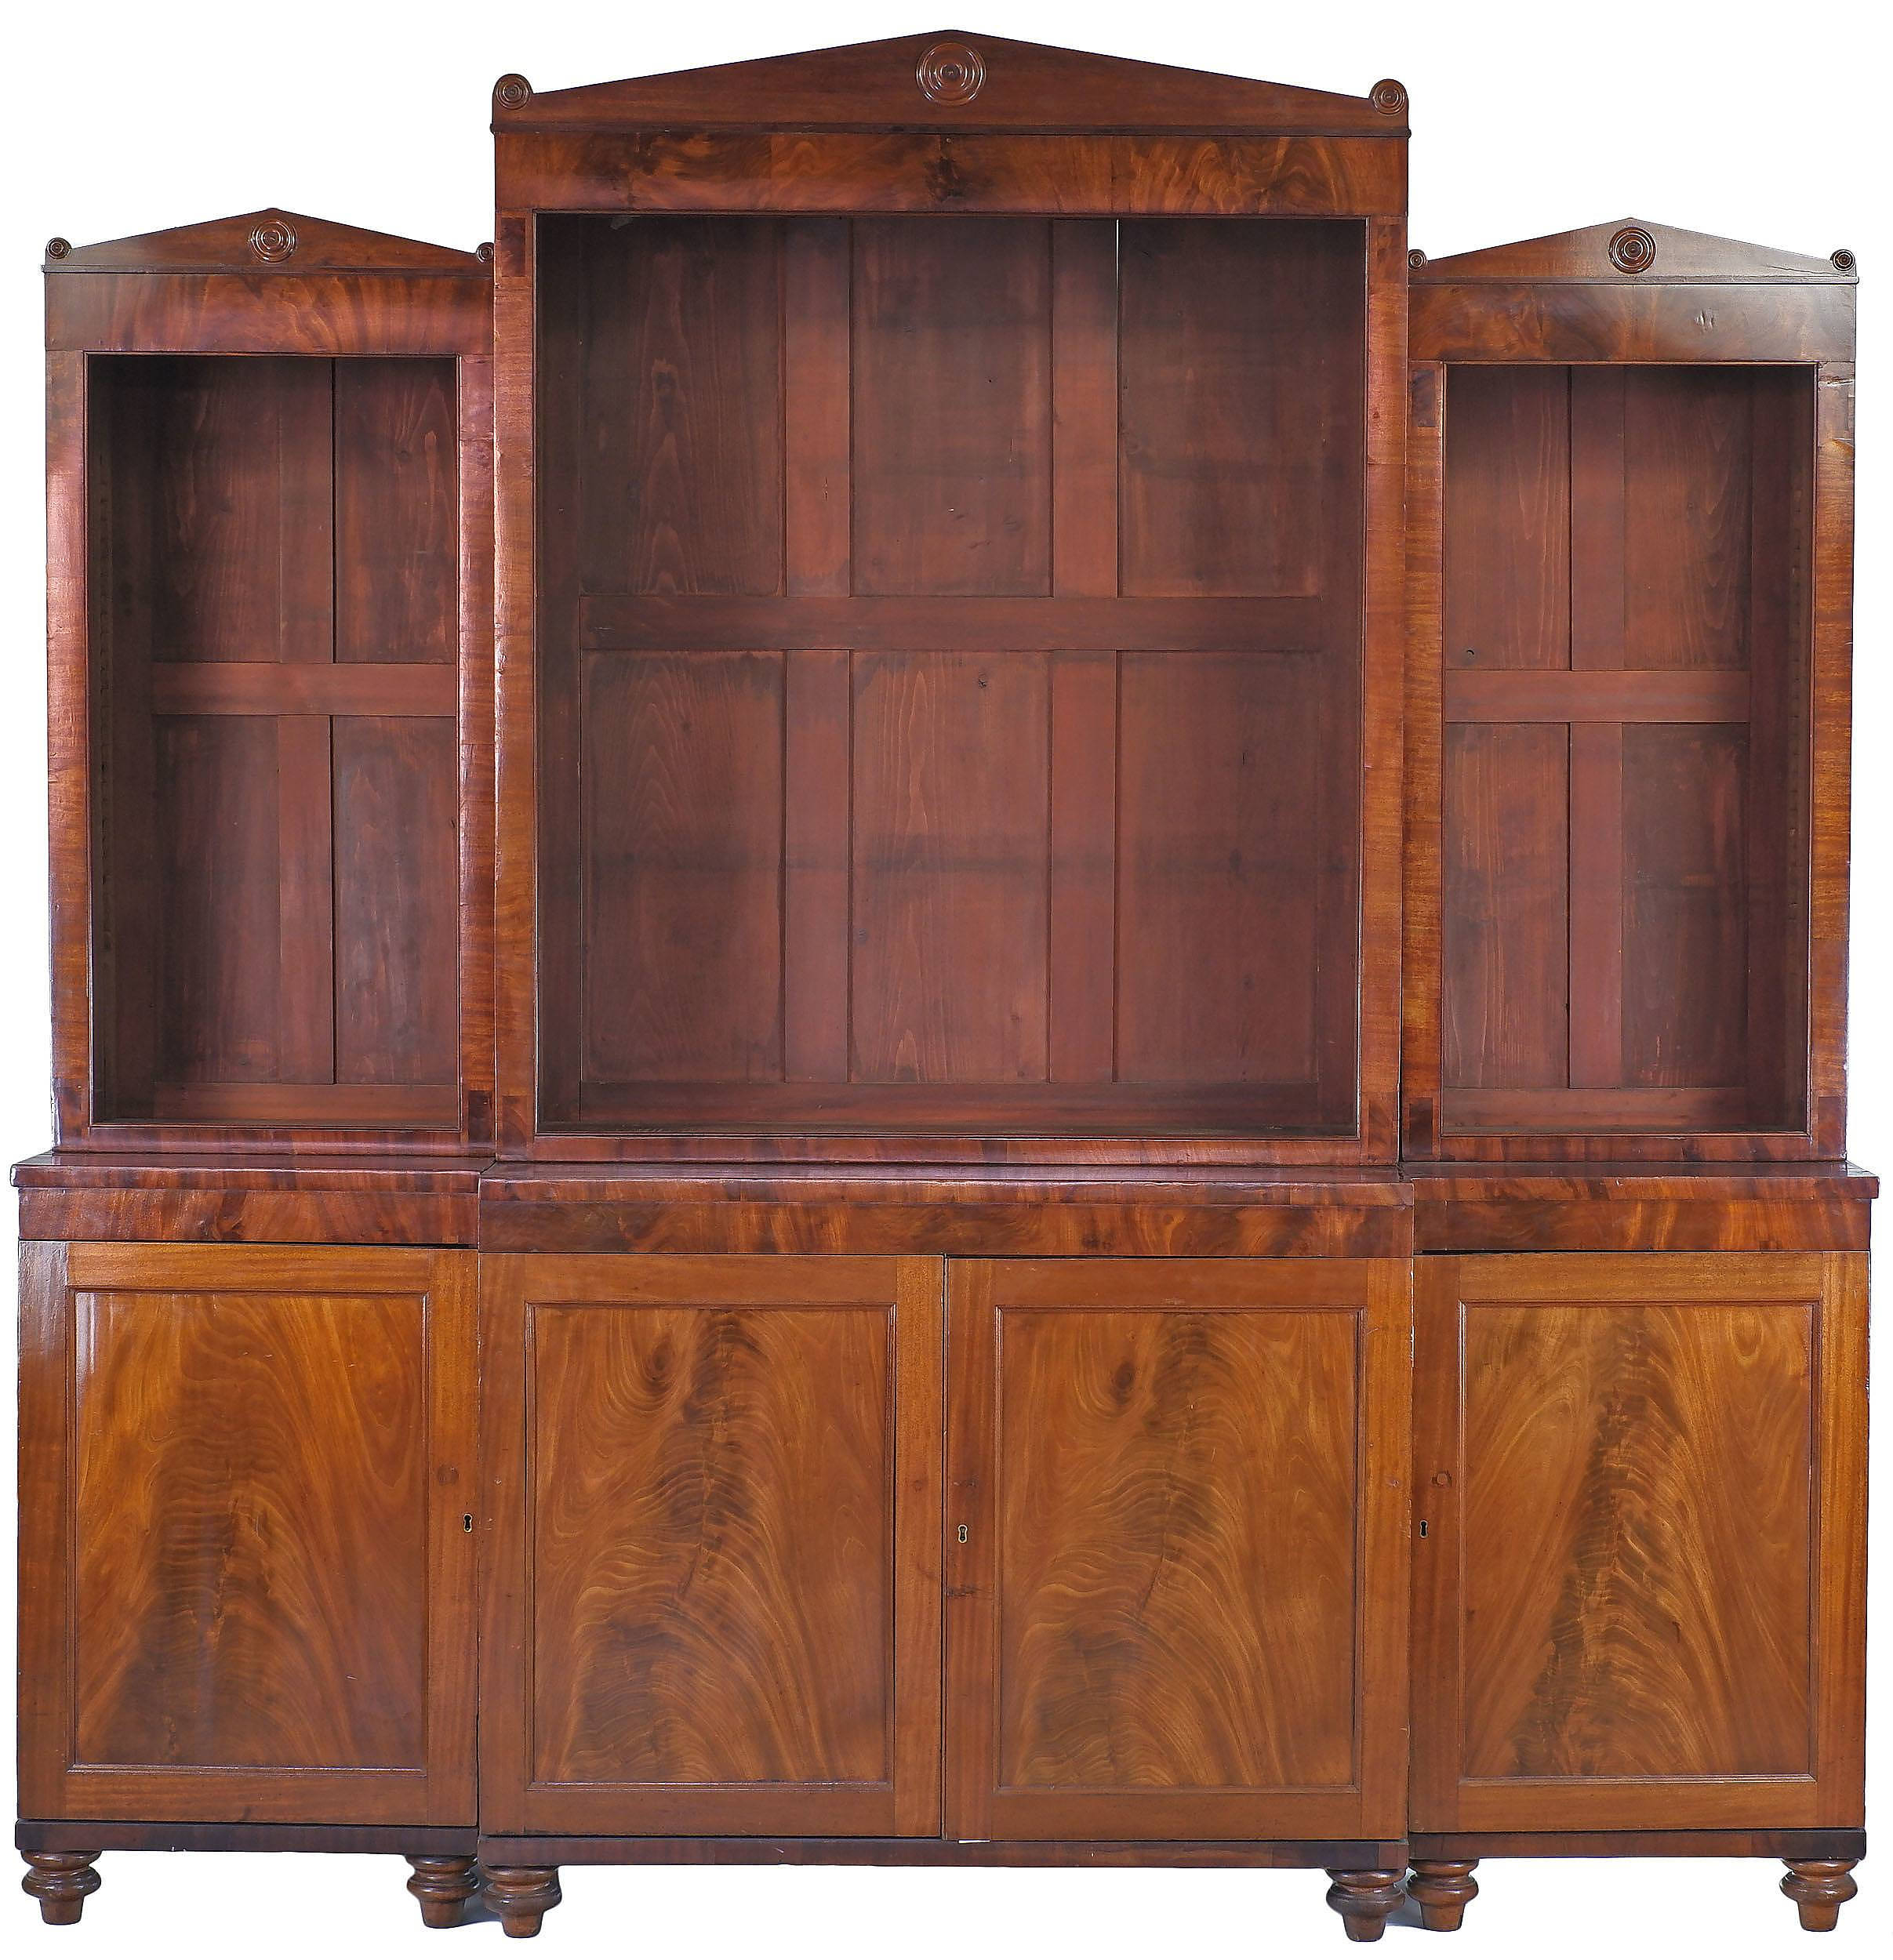 'Regency Style Open Breakfront Mahogany Bookcase With Grecian Revival Pediment 20th Century'